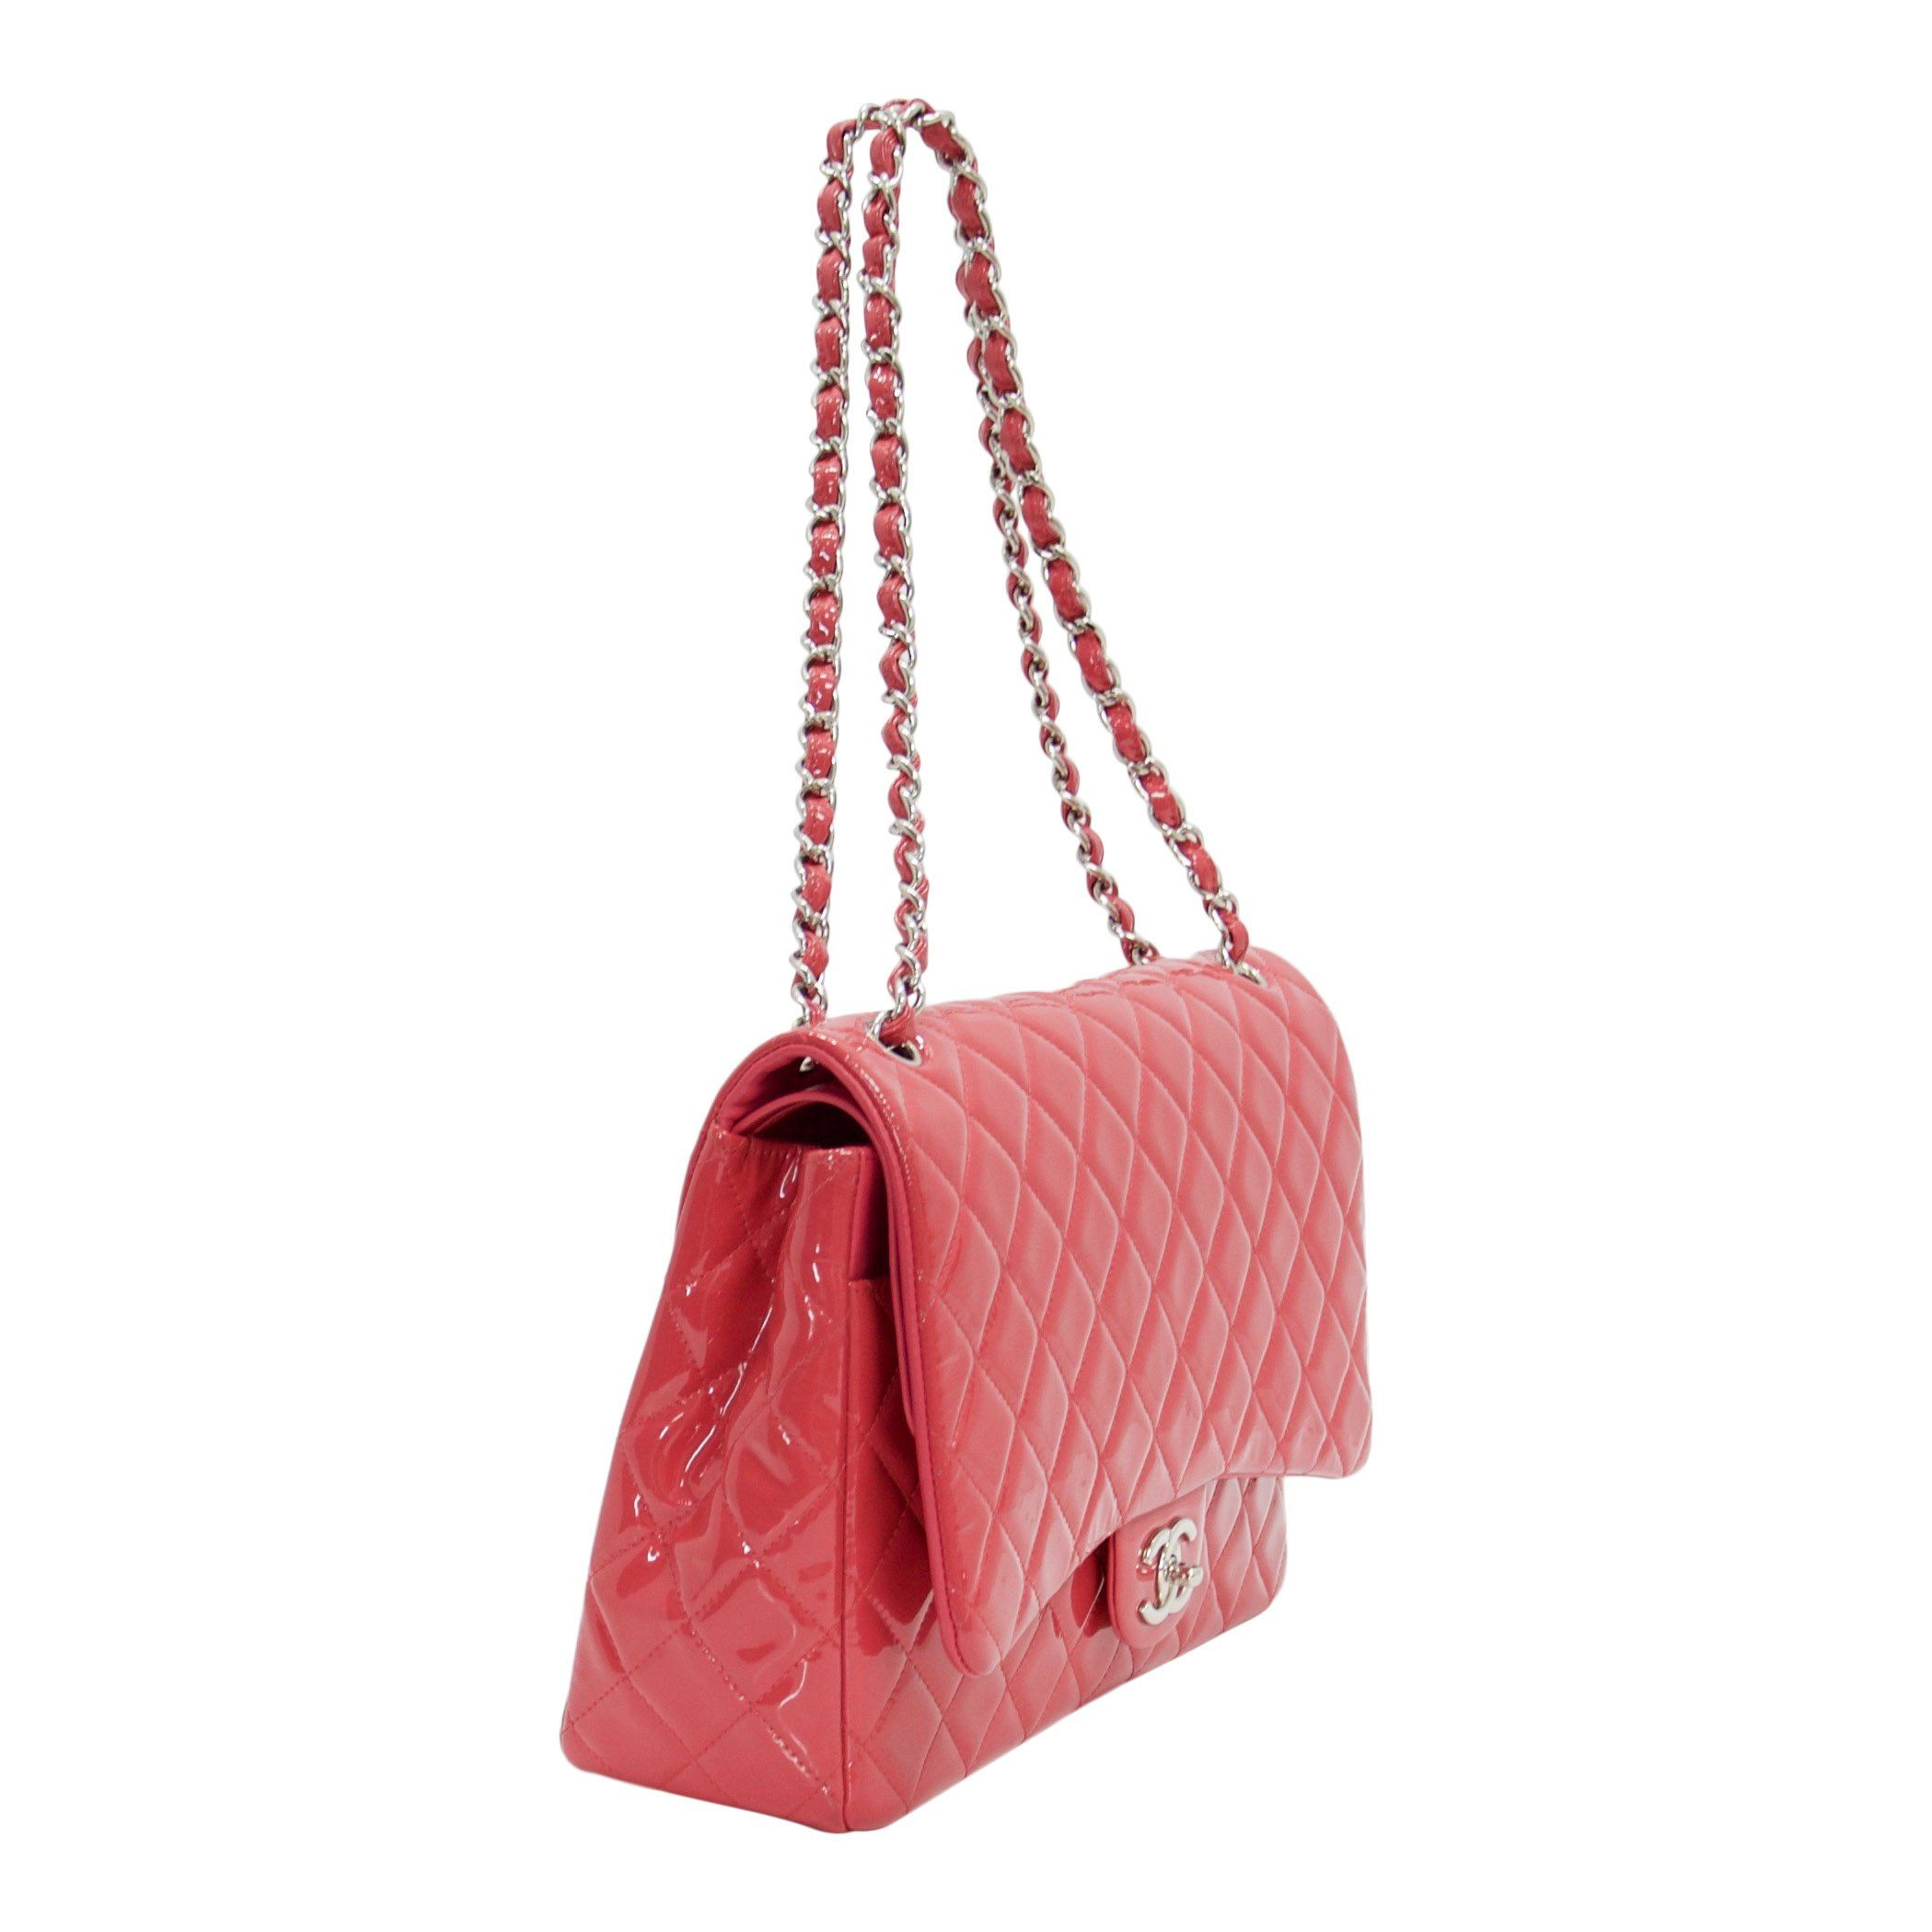 3594bb9a6821 ... Chanel Pink Patent Leather Classic Maxi Double Flap Bag - Bags ...